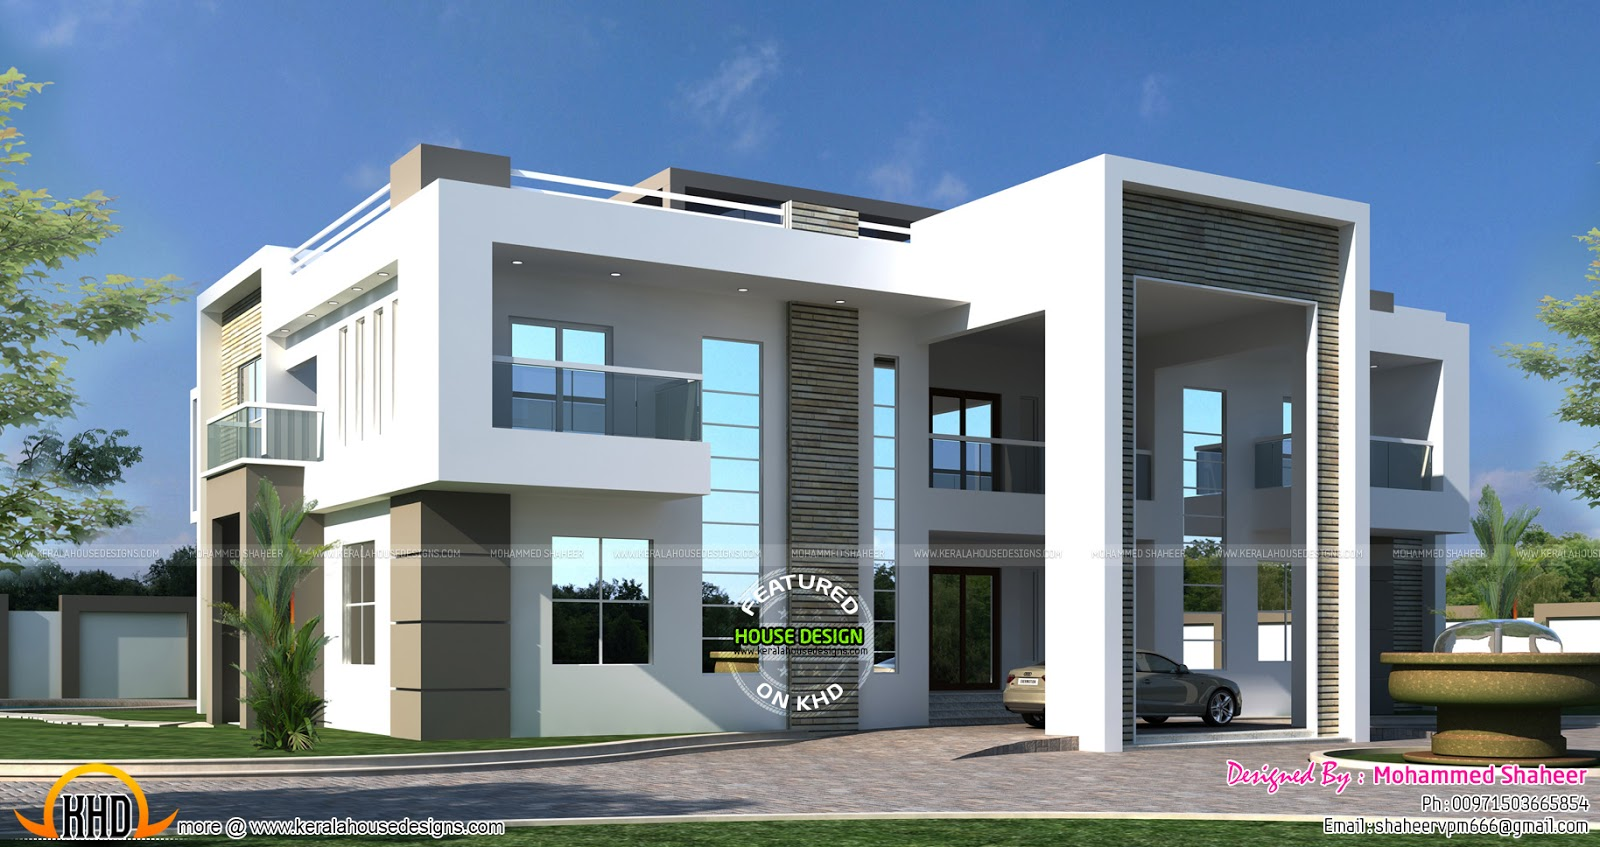 Flat roof arabian house plan kerala home design and for Executive house plans